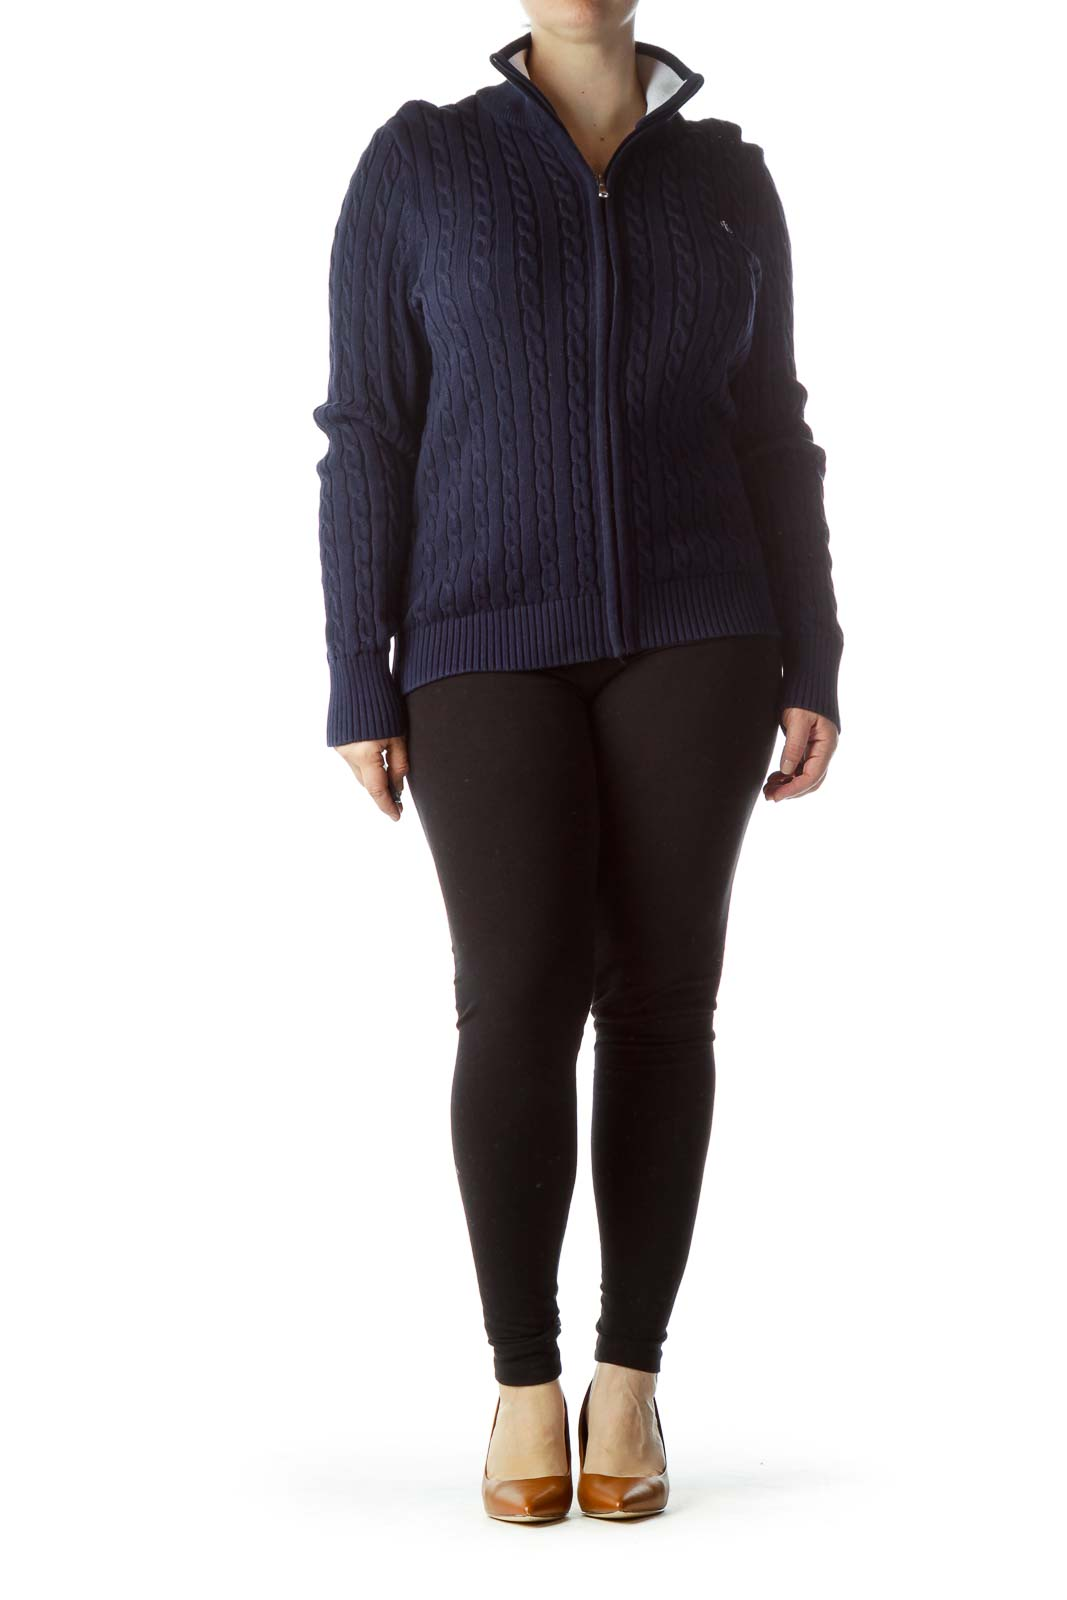 Navy Blue Zippered 100% Cotton Sweater